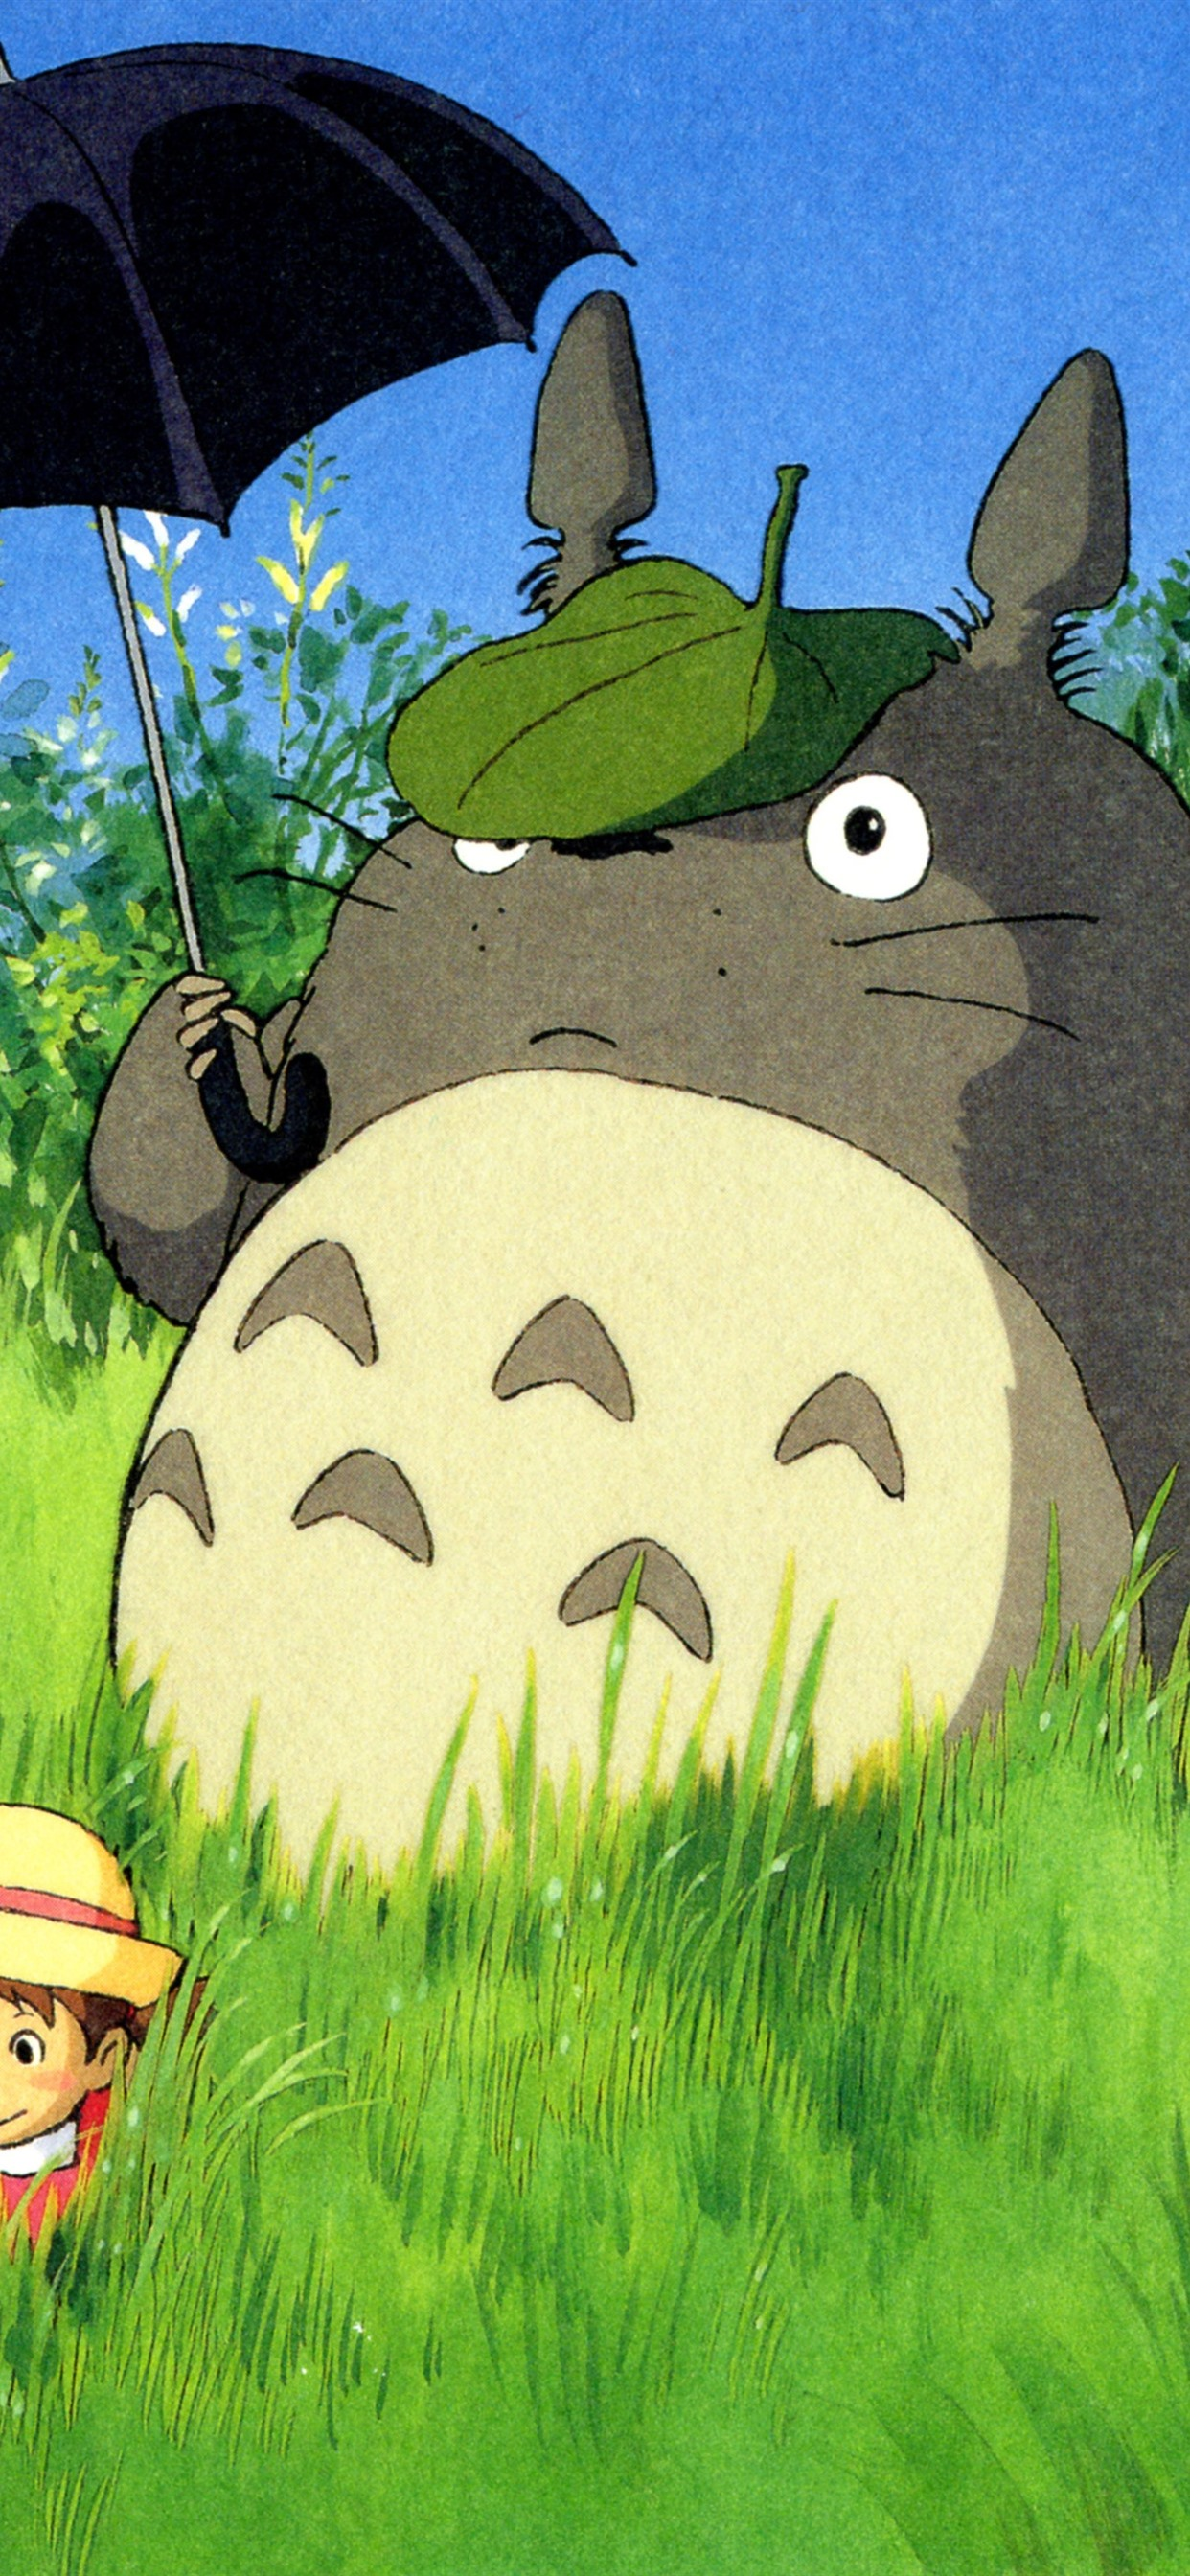 My Neighbor Totoro Classic Anime 1242x2688 Iphone Xs Max Wallpaper